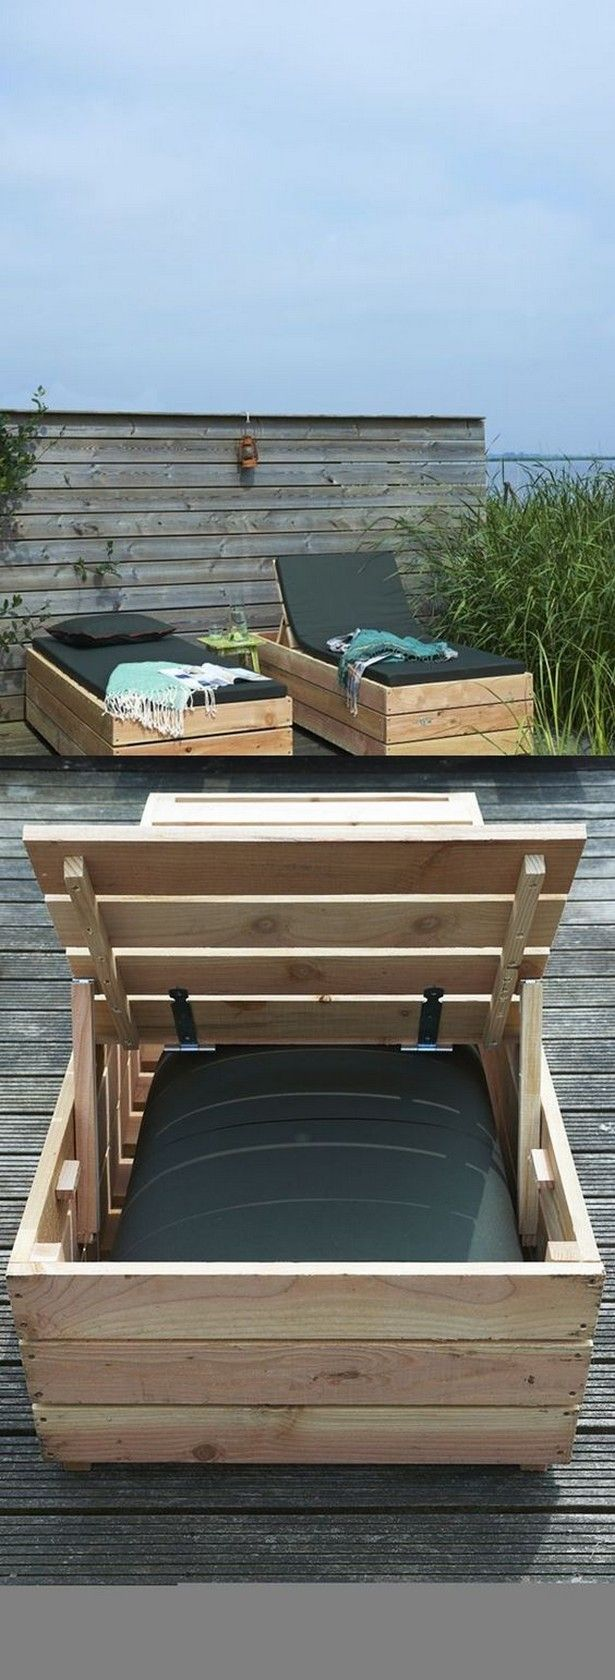 DIY Outdoor Pallet Furniture Projects DIY Projects & Creative Crafts  How  To Make Everything Homemade - DIY Projects & Creative Crafts  How To Make  ...